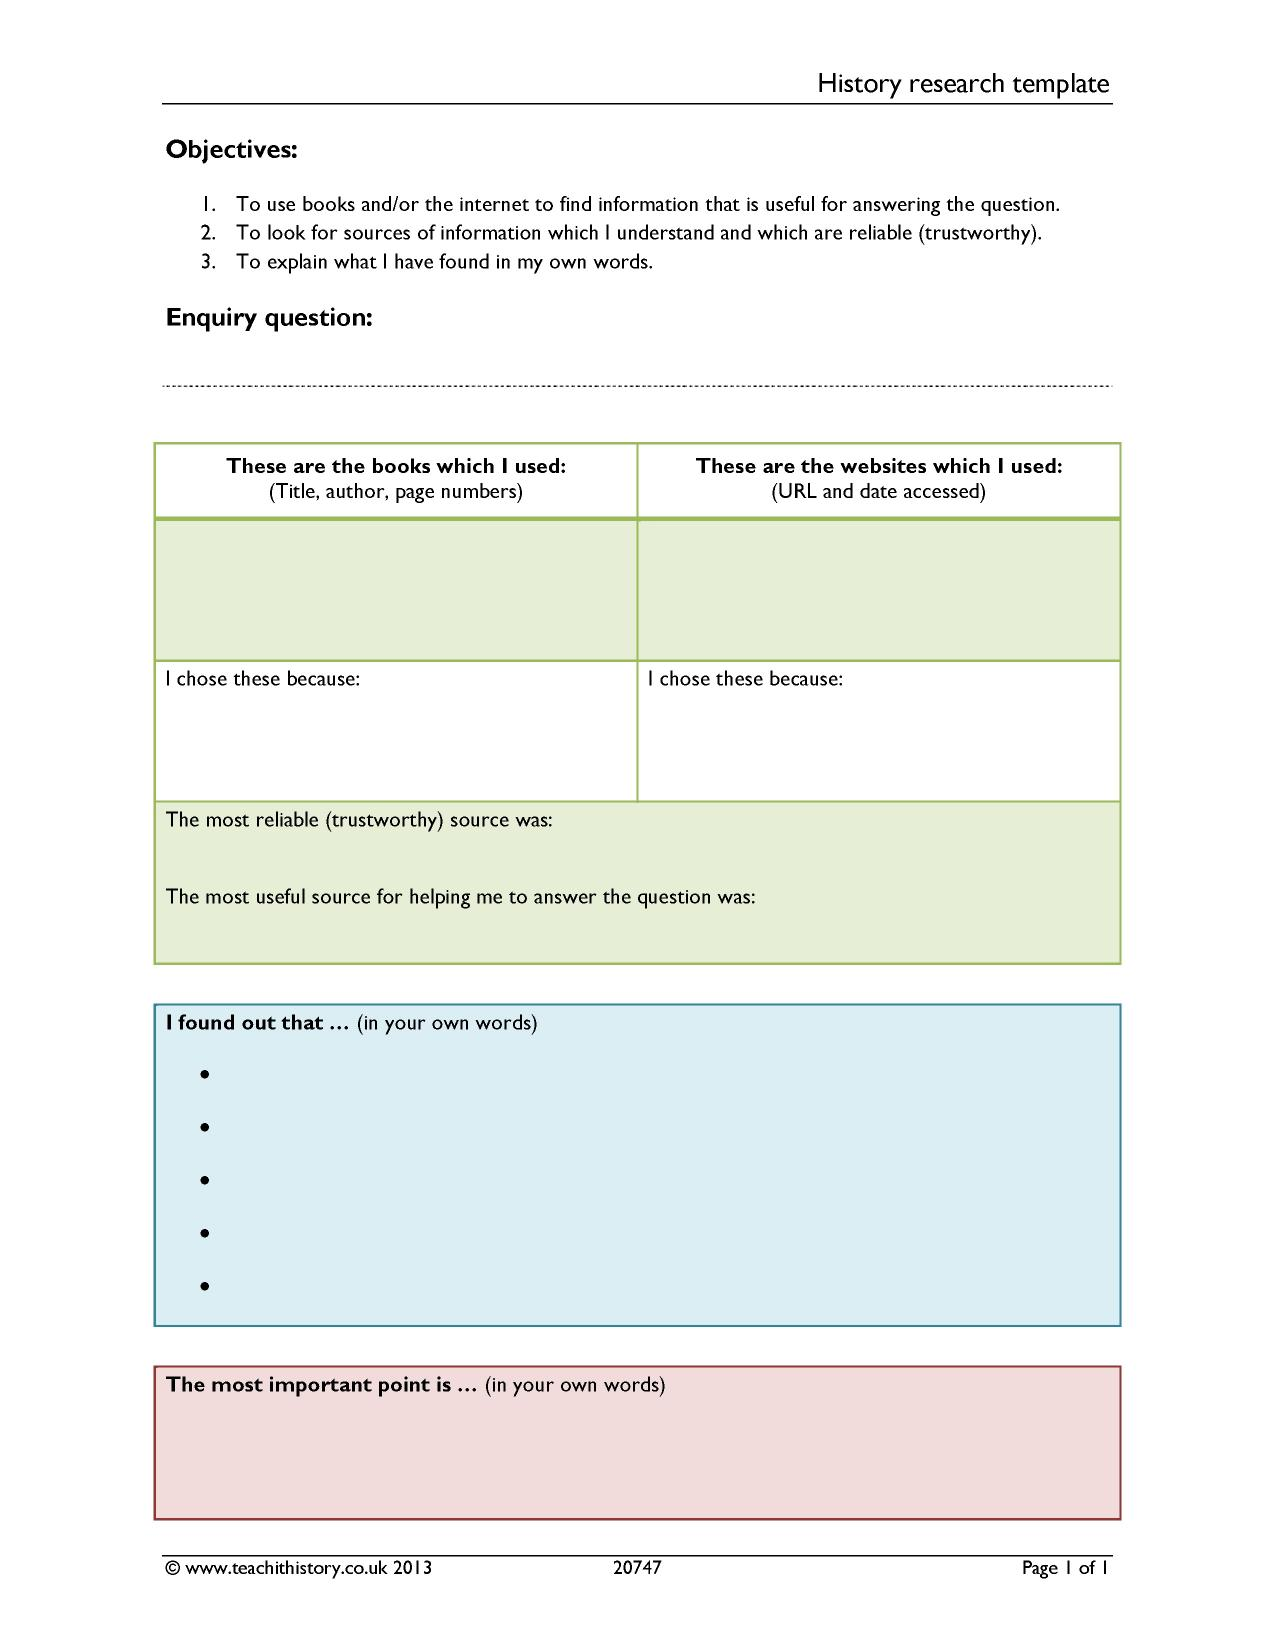 History Teaching Templates And Tools Teachit History